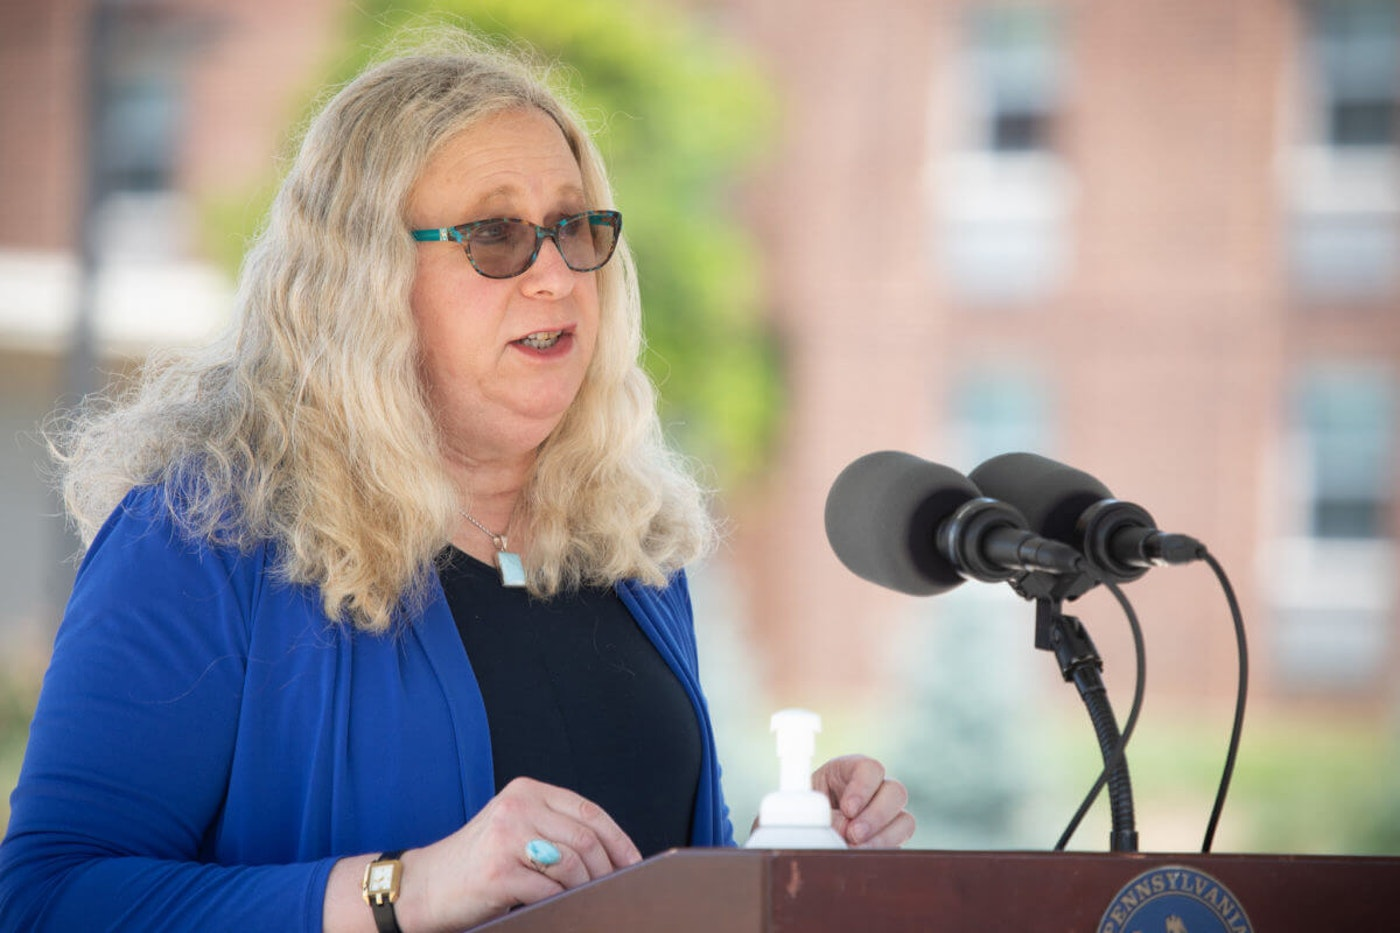 Pennsylvania Secretary of Health Dr. Rachel Levine speaks at a news conference on July 21, 2020, in York, York County. (Flickr/Office of Gov. Tom Wolf)